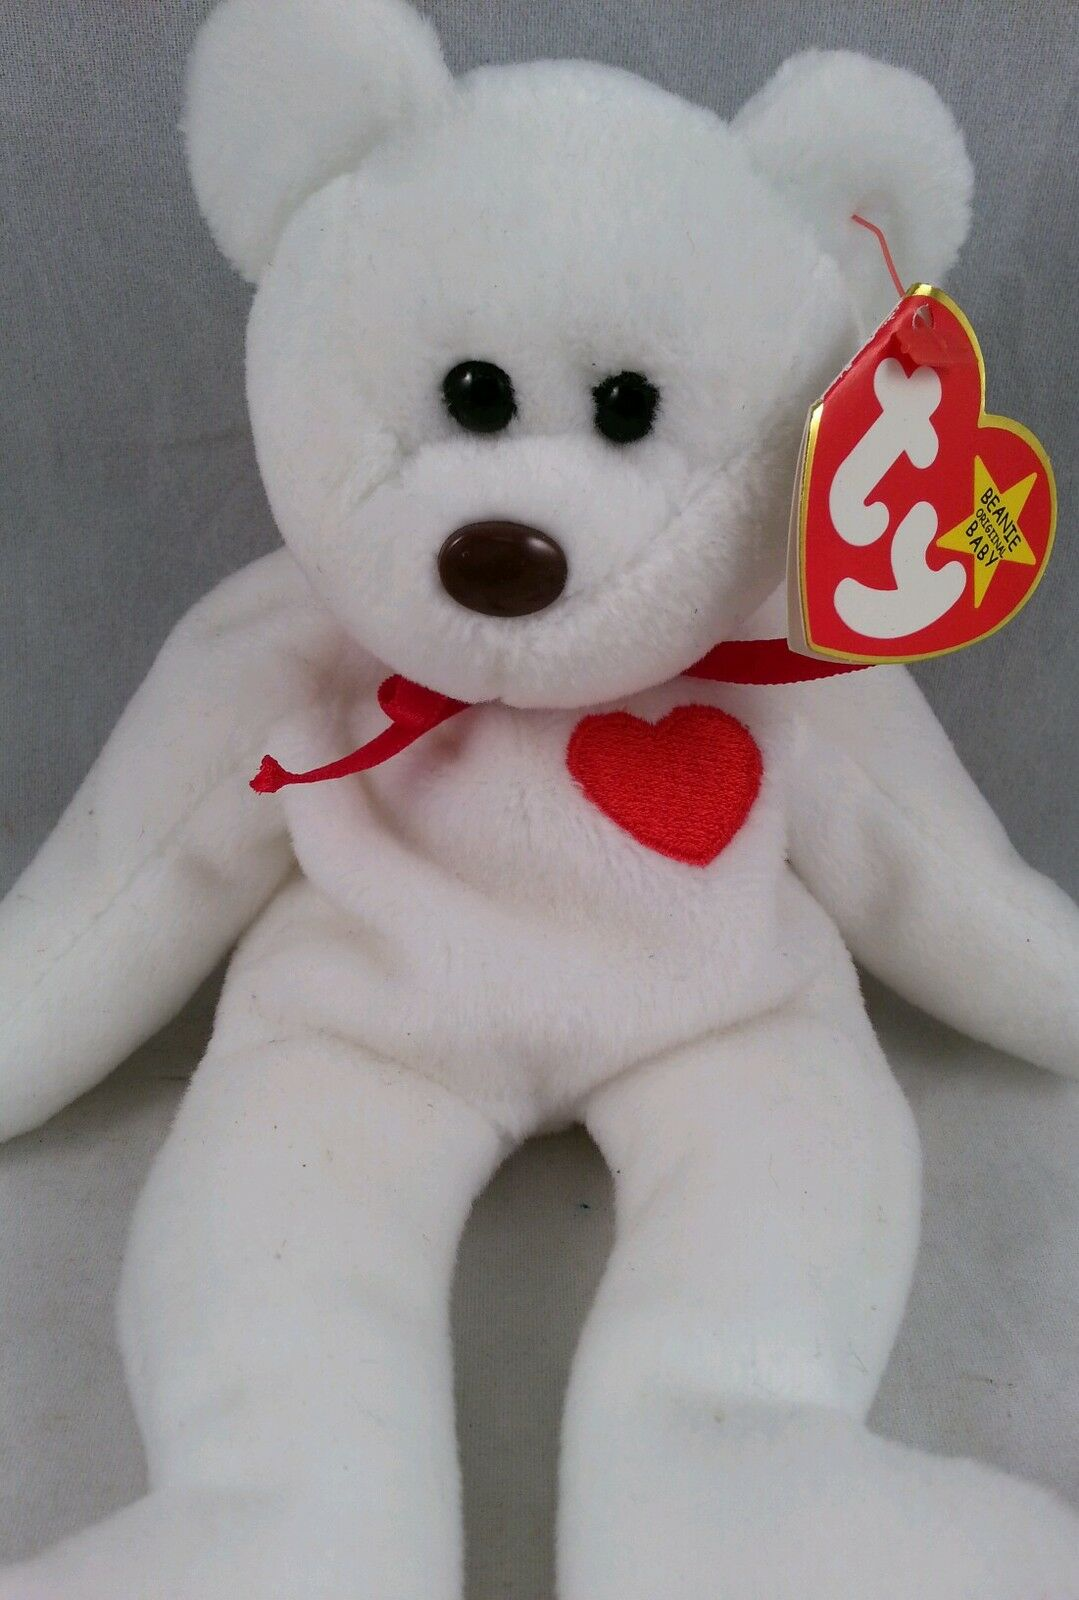 Extremely Extremely Extremely Rare  MWMT VALENTINO 1993 TY INC Beanie Baby w 2 Swing Tag Errors PVC 4745c9